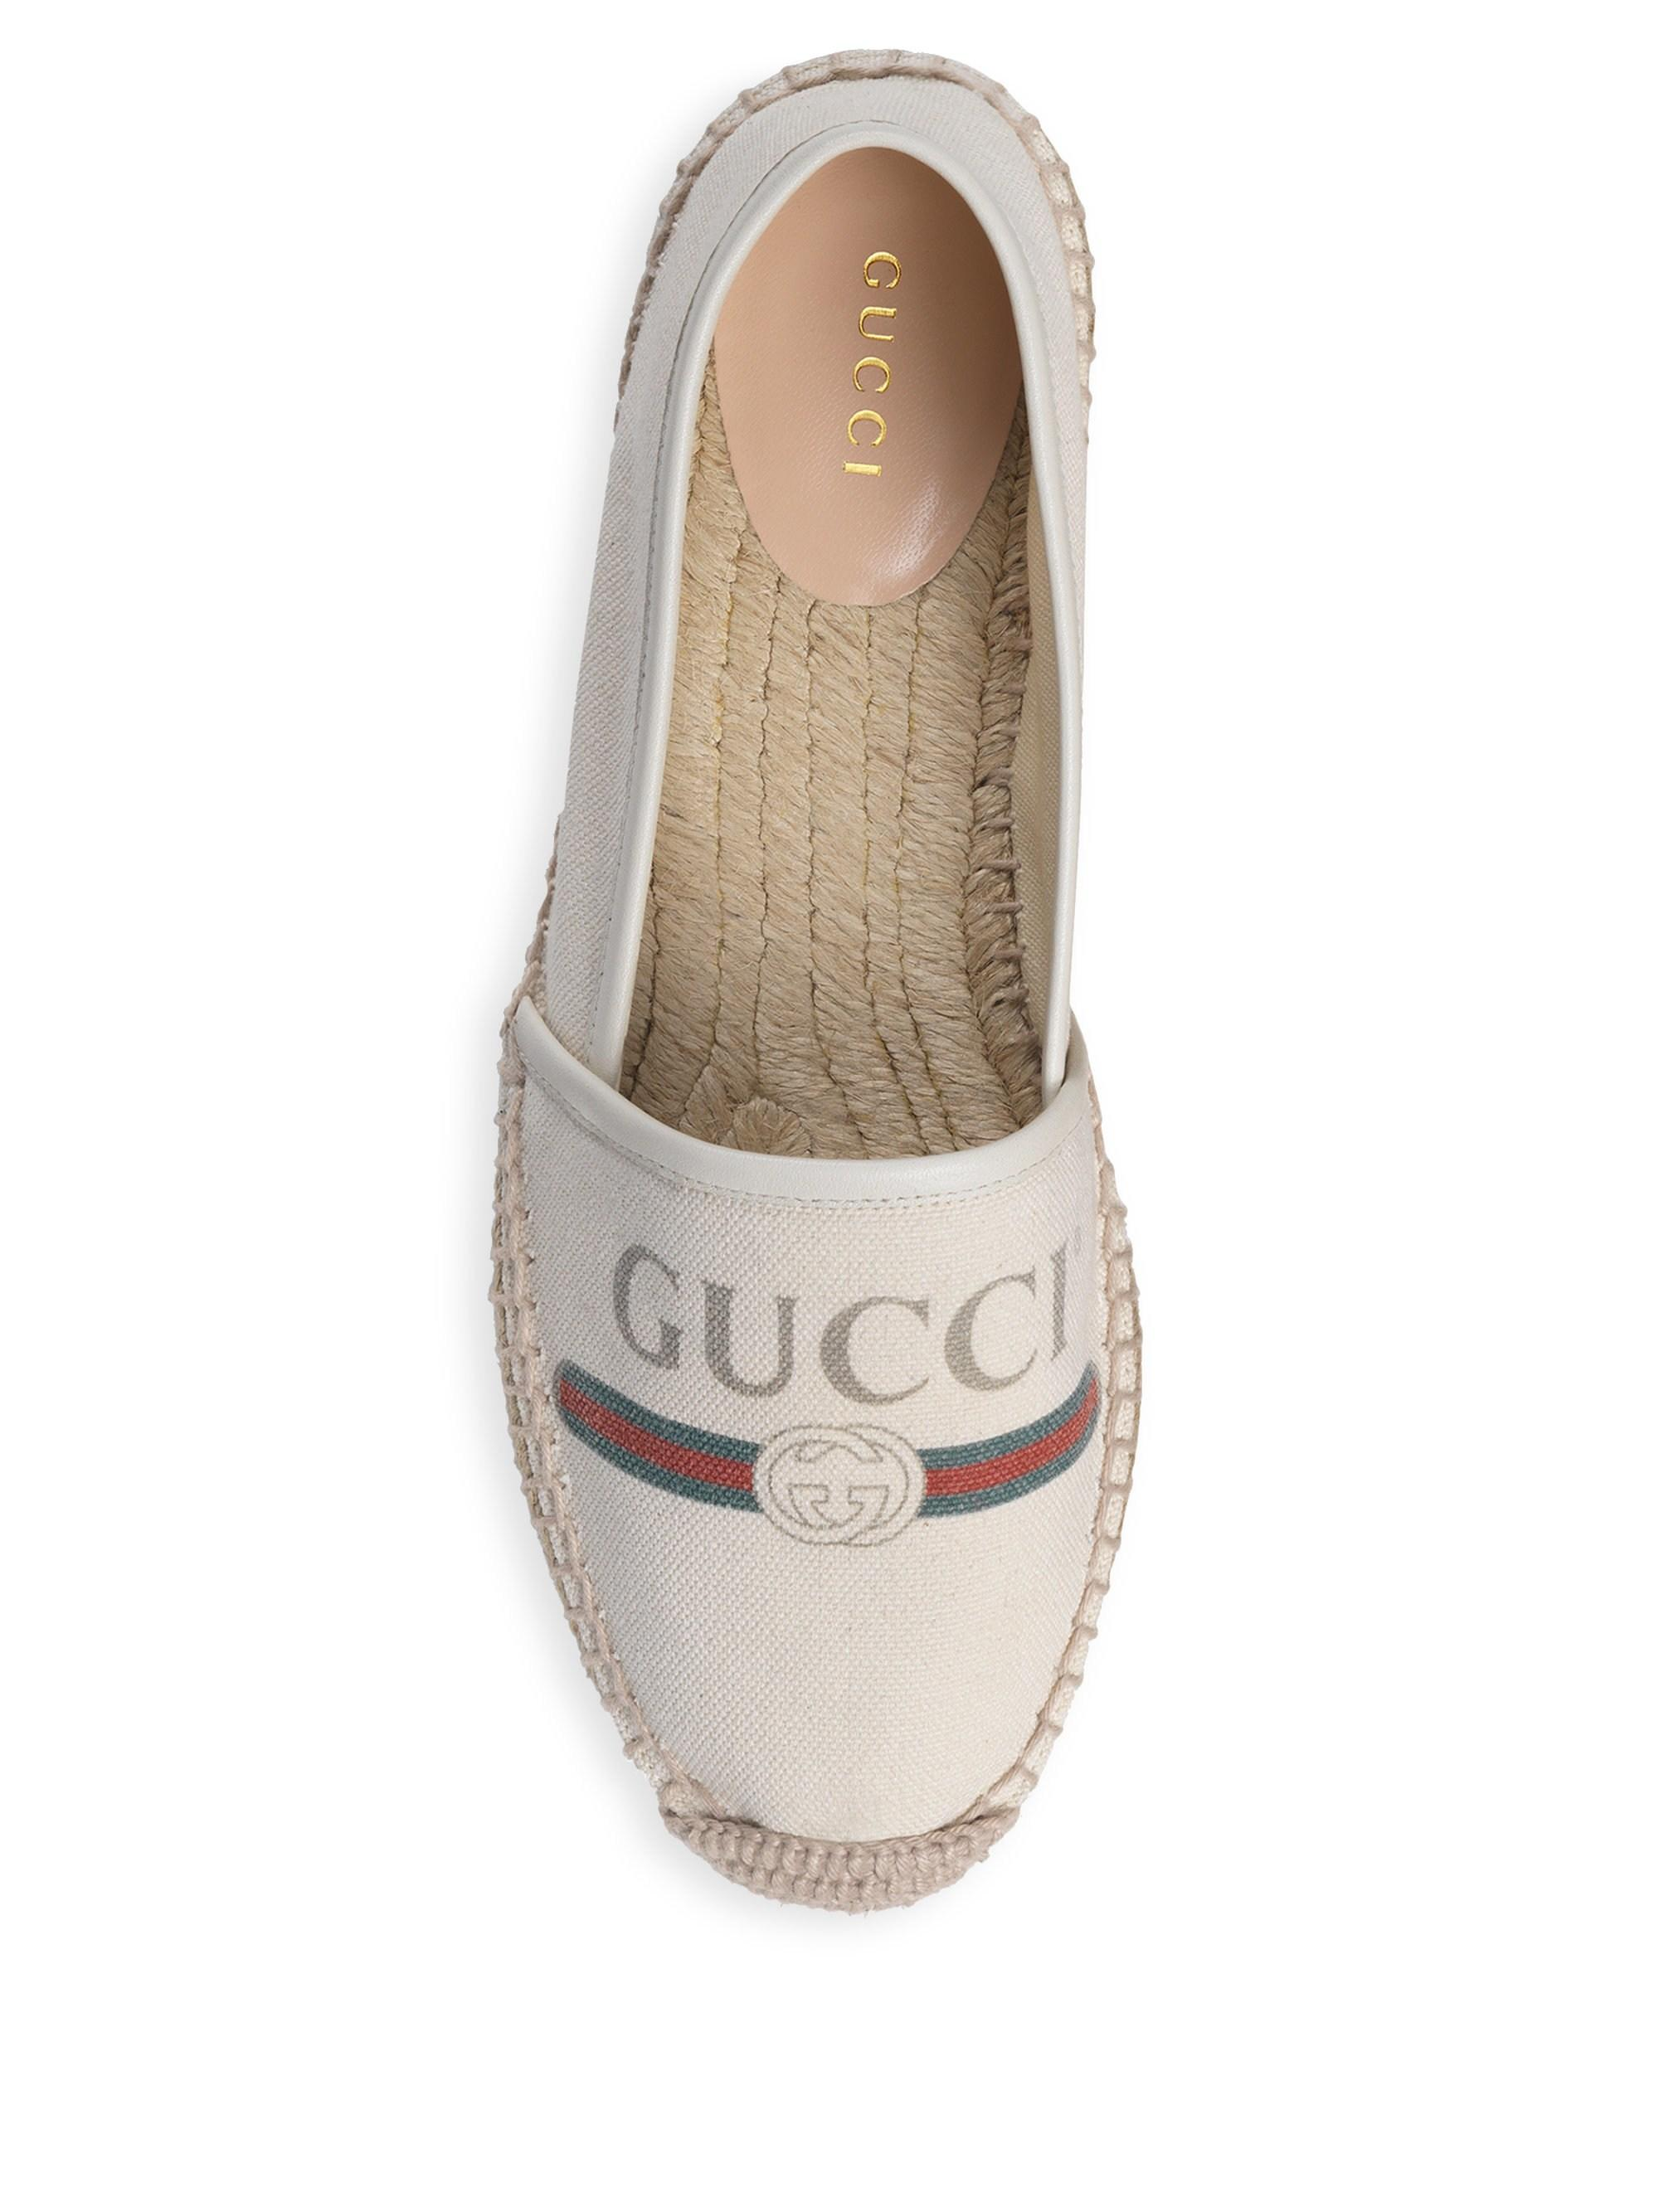 1fd76bc6d25f Lyst - Gucci Women's Logo Canvas Espadrilles - Grey - Size 35.5 (5.5) in  Gray